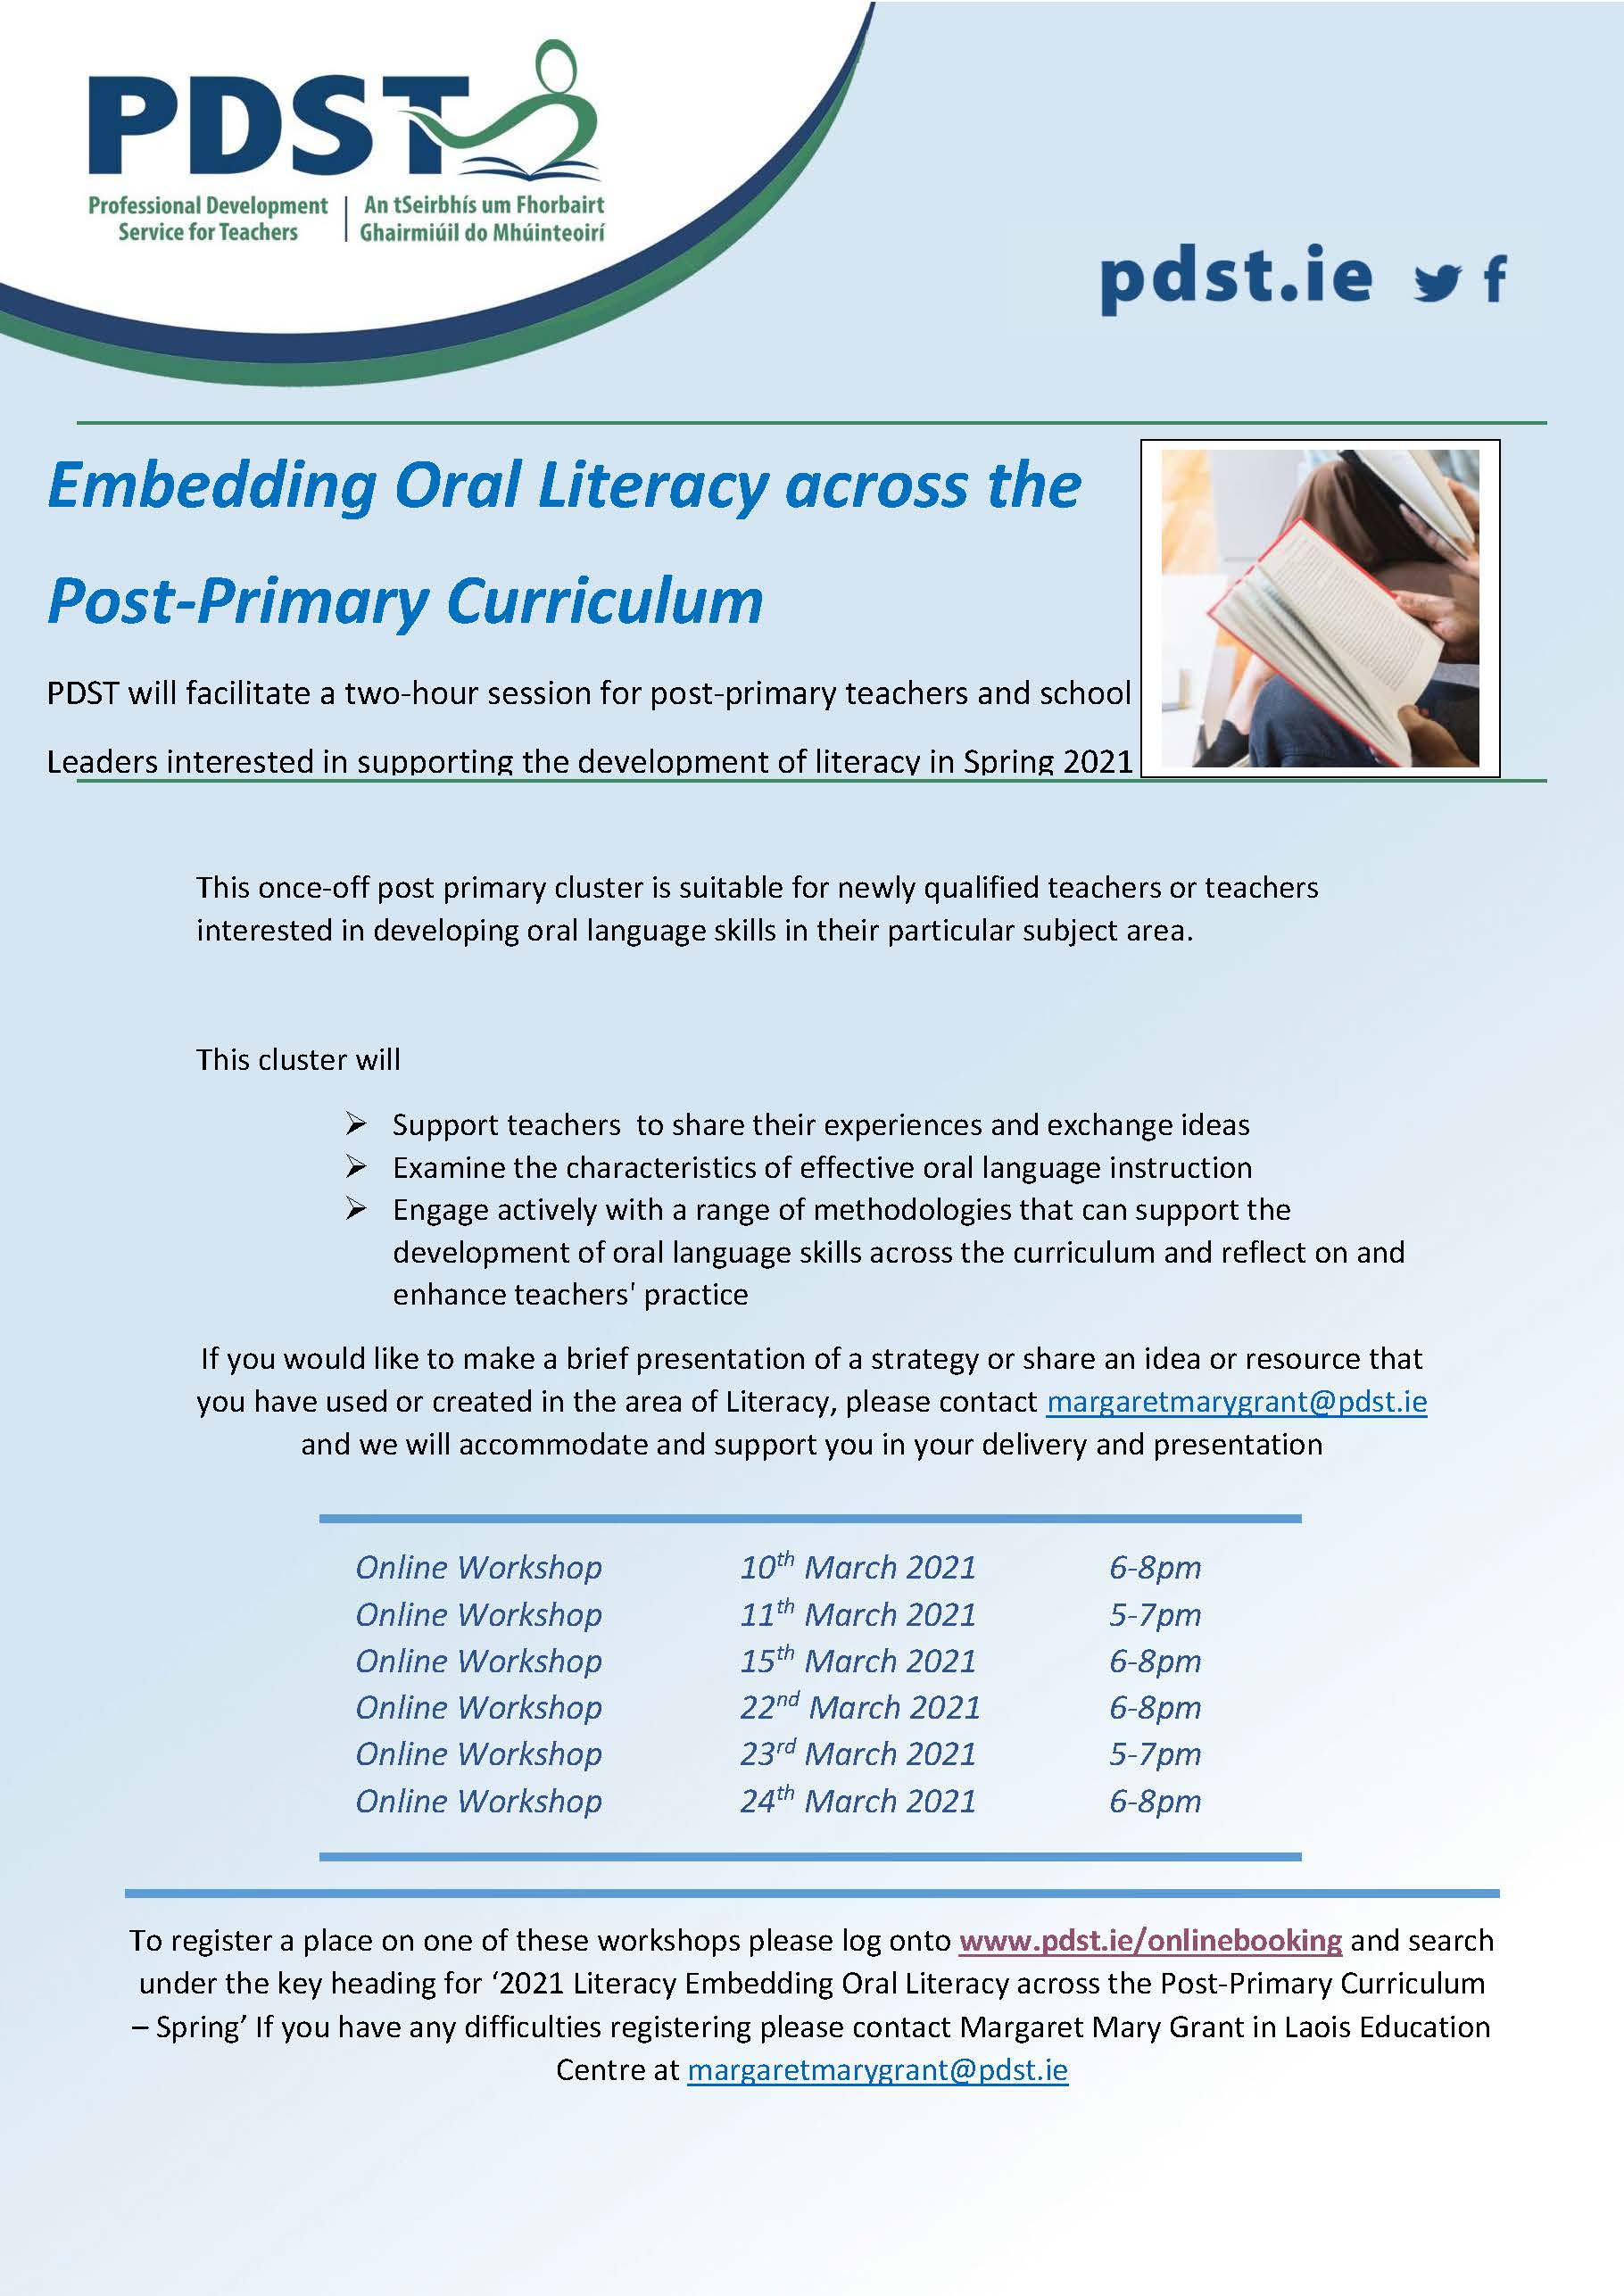 Embedding Oral Literacy across the PP Curriculum Spring 2021 MMG